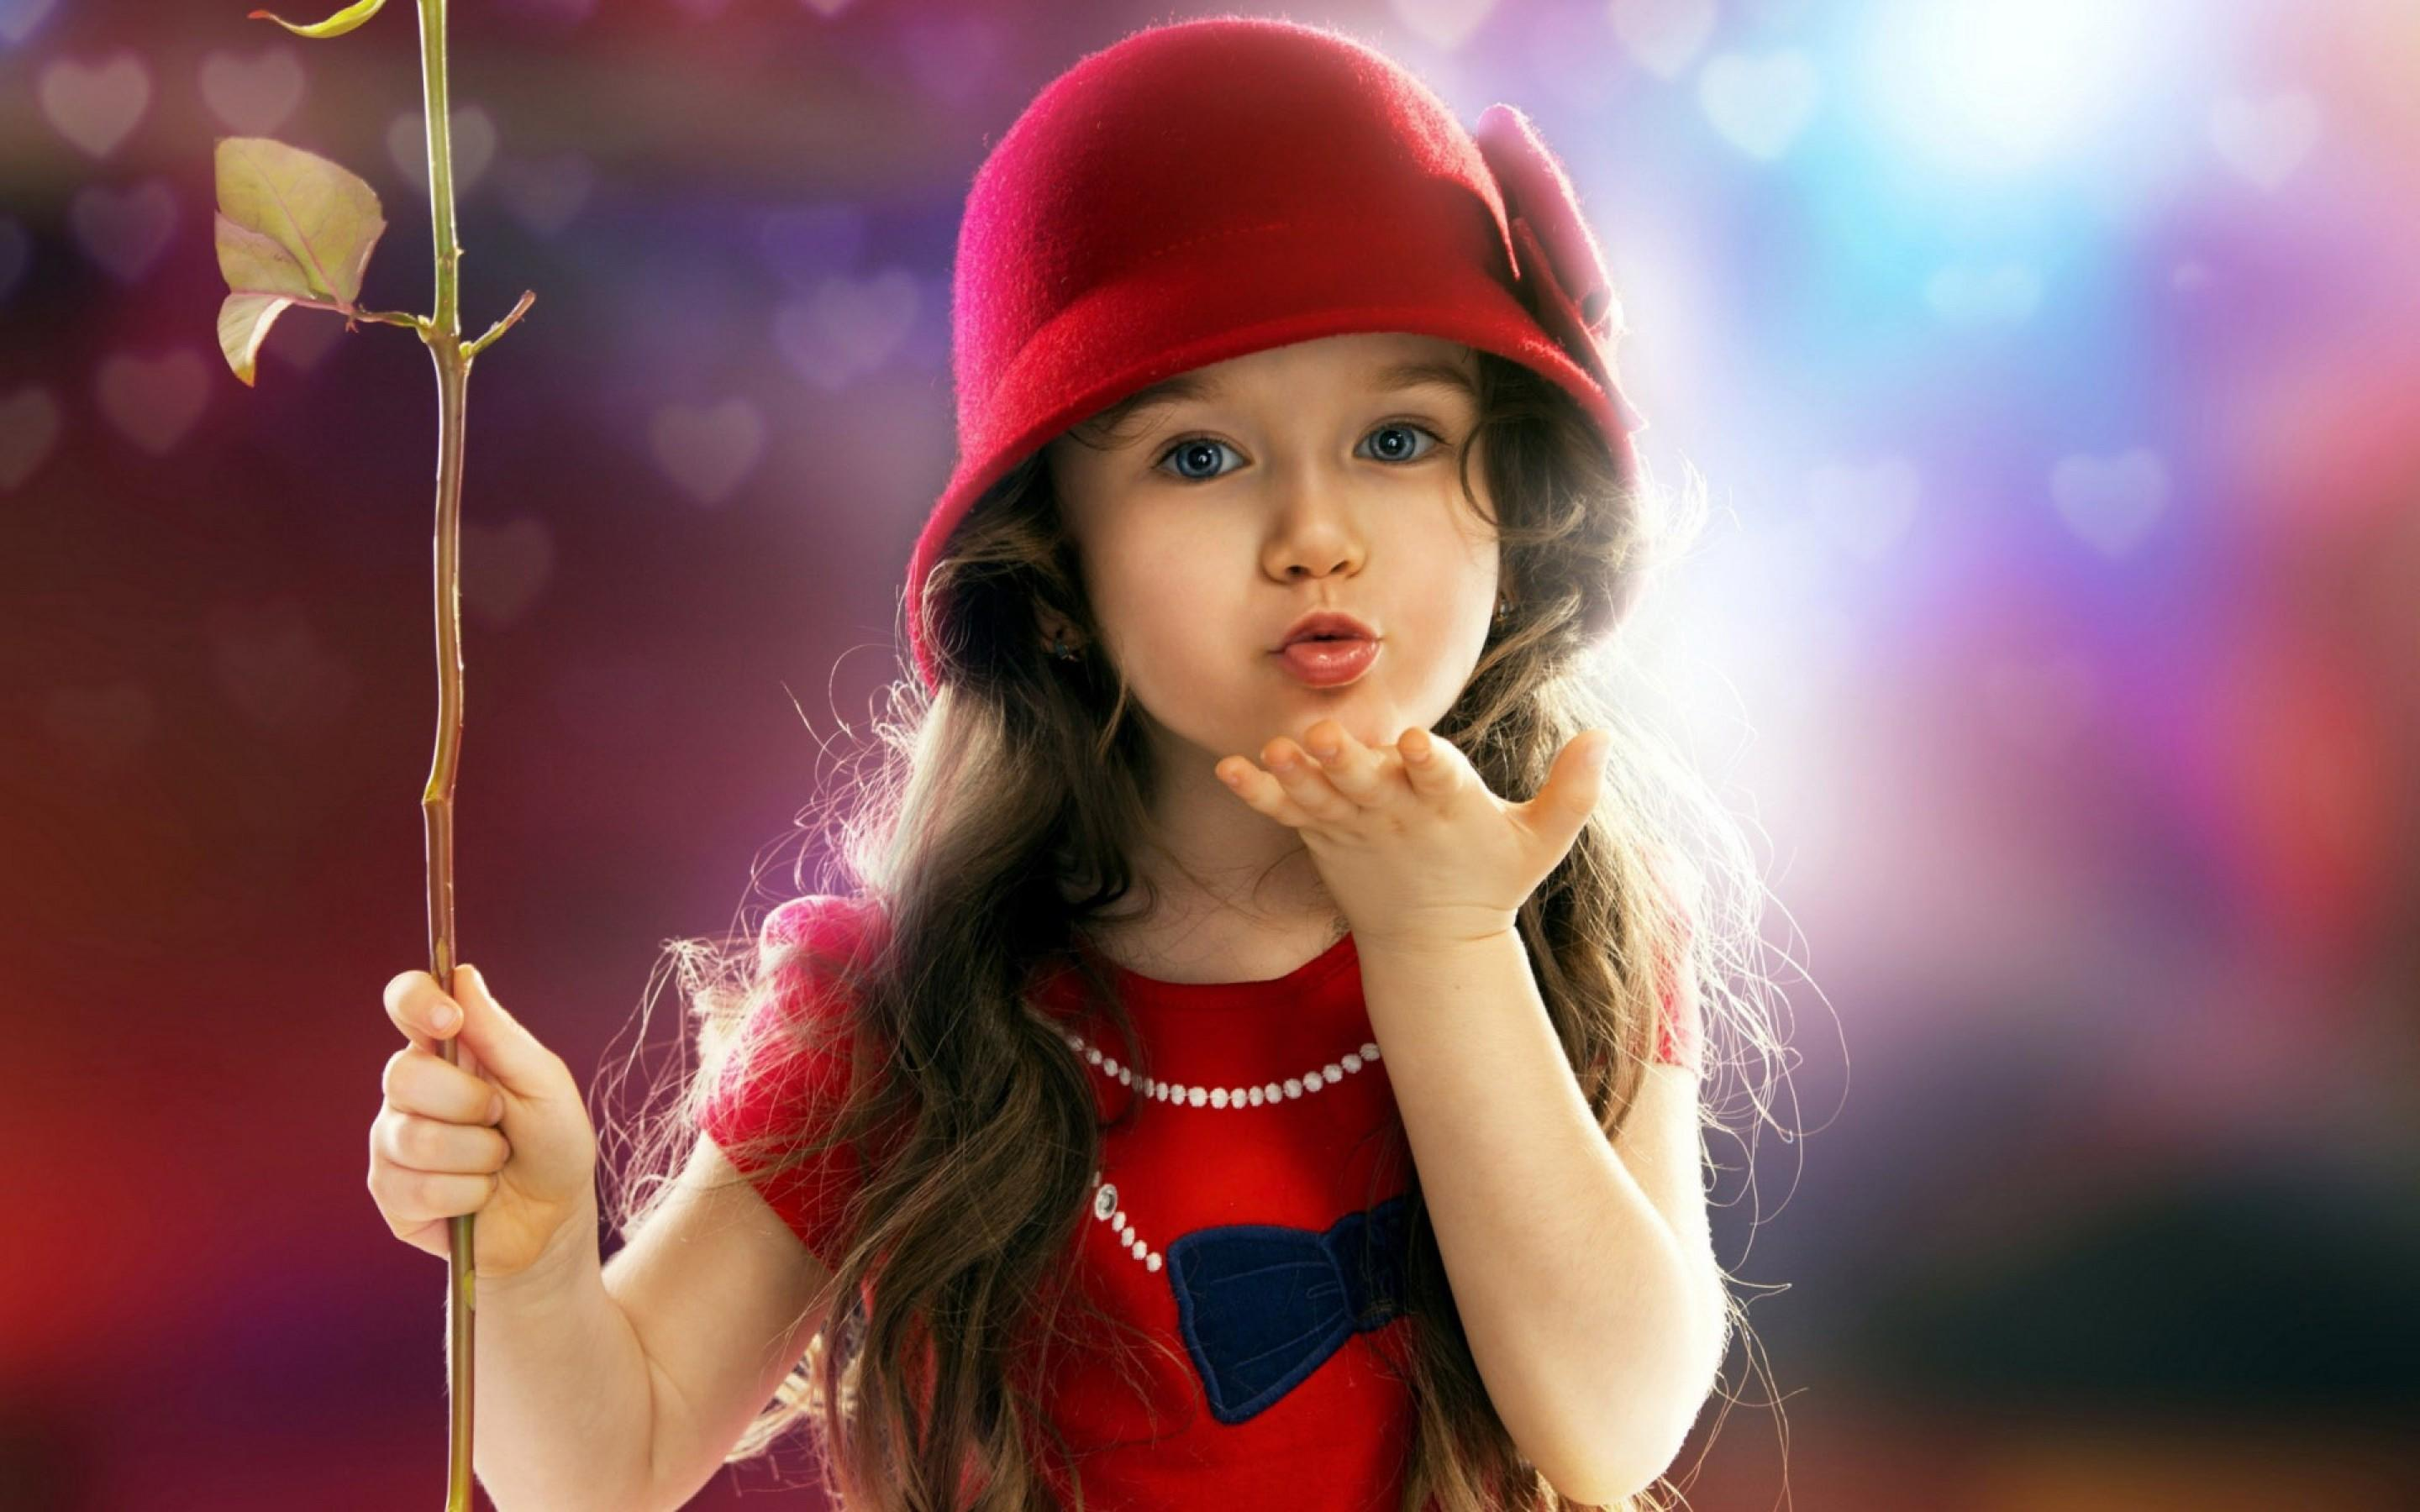 859 child hd wallpapers background images wallpaper abyss hd wallpaper background image id685504 altavistaventures Choice Image